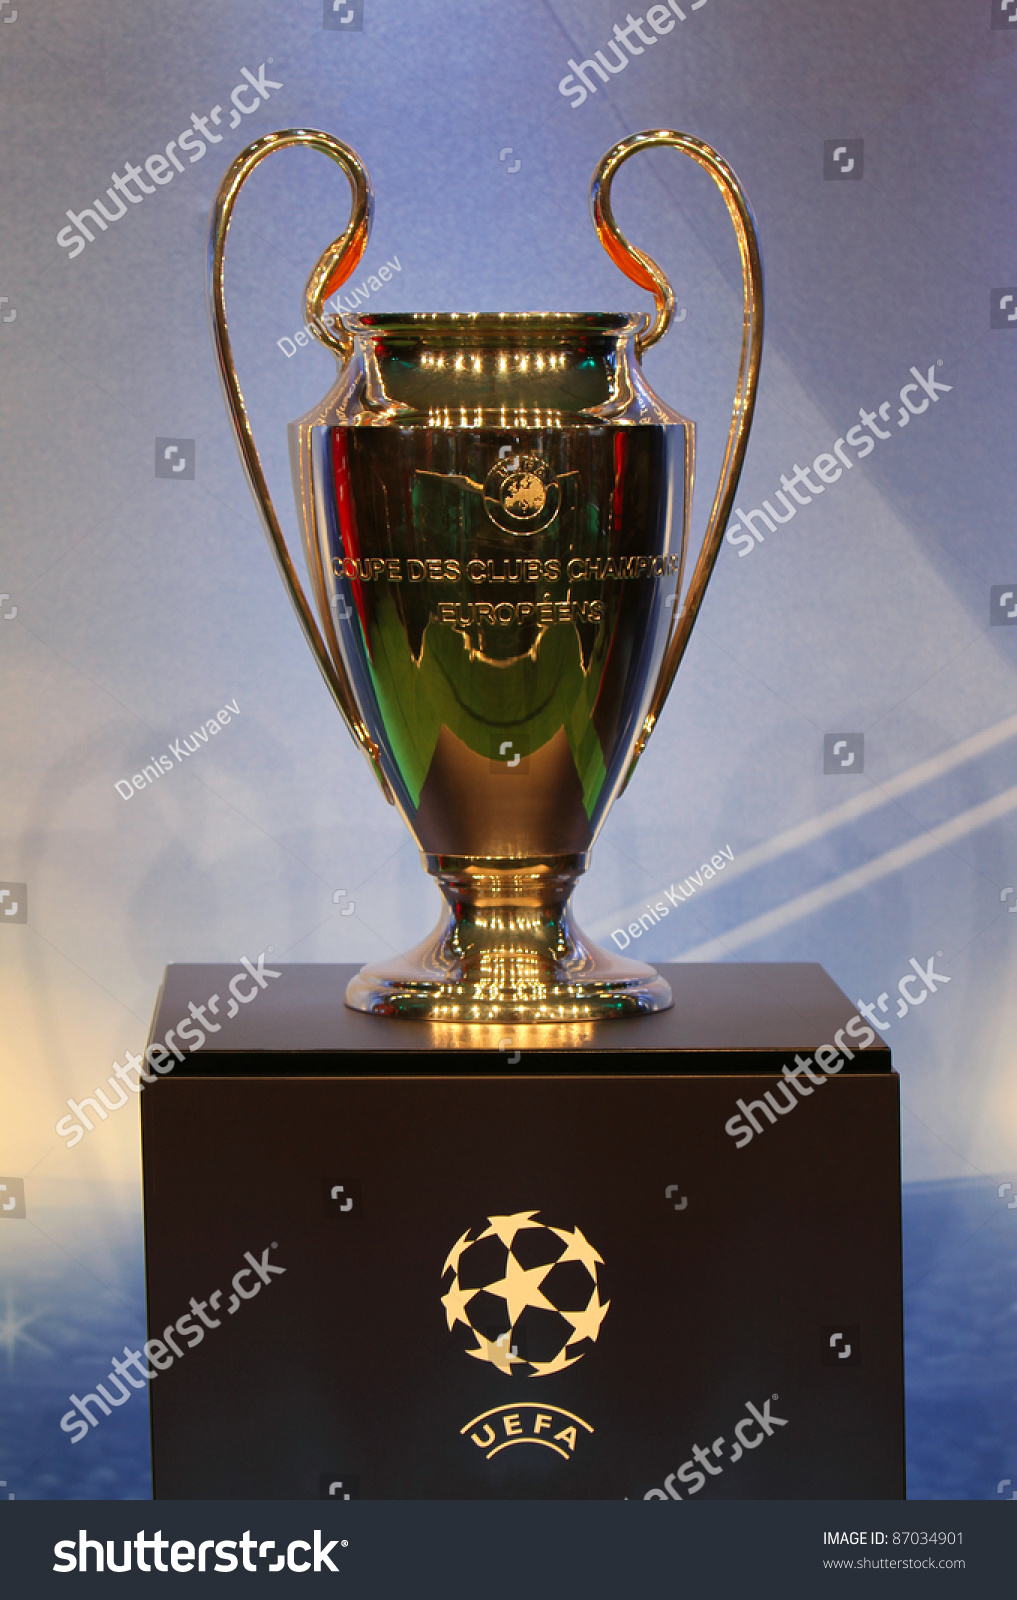 europa cup champions